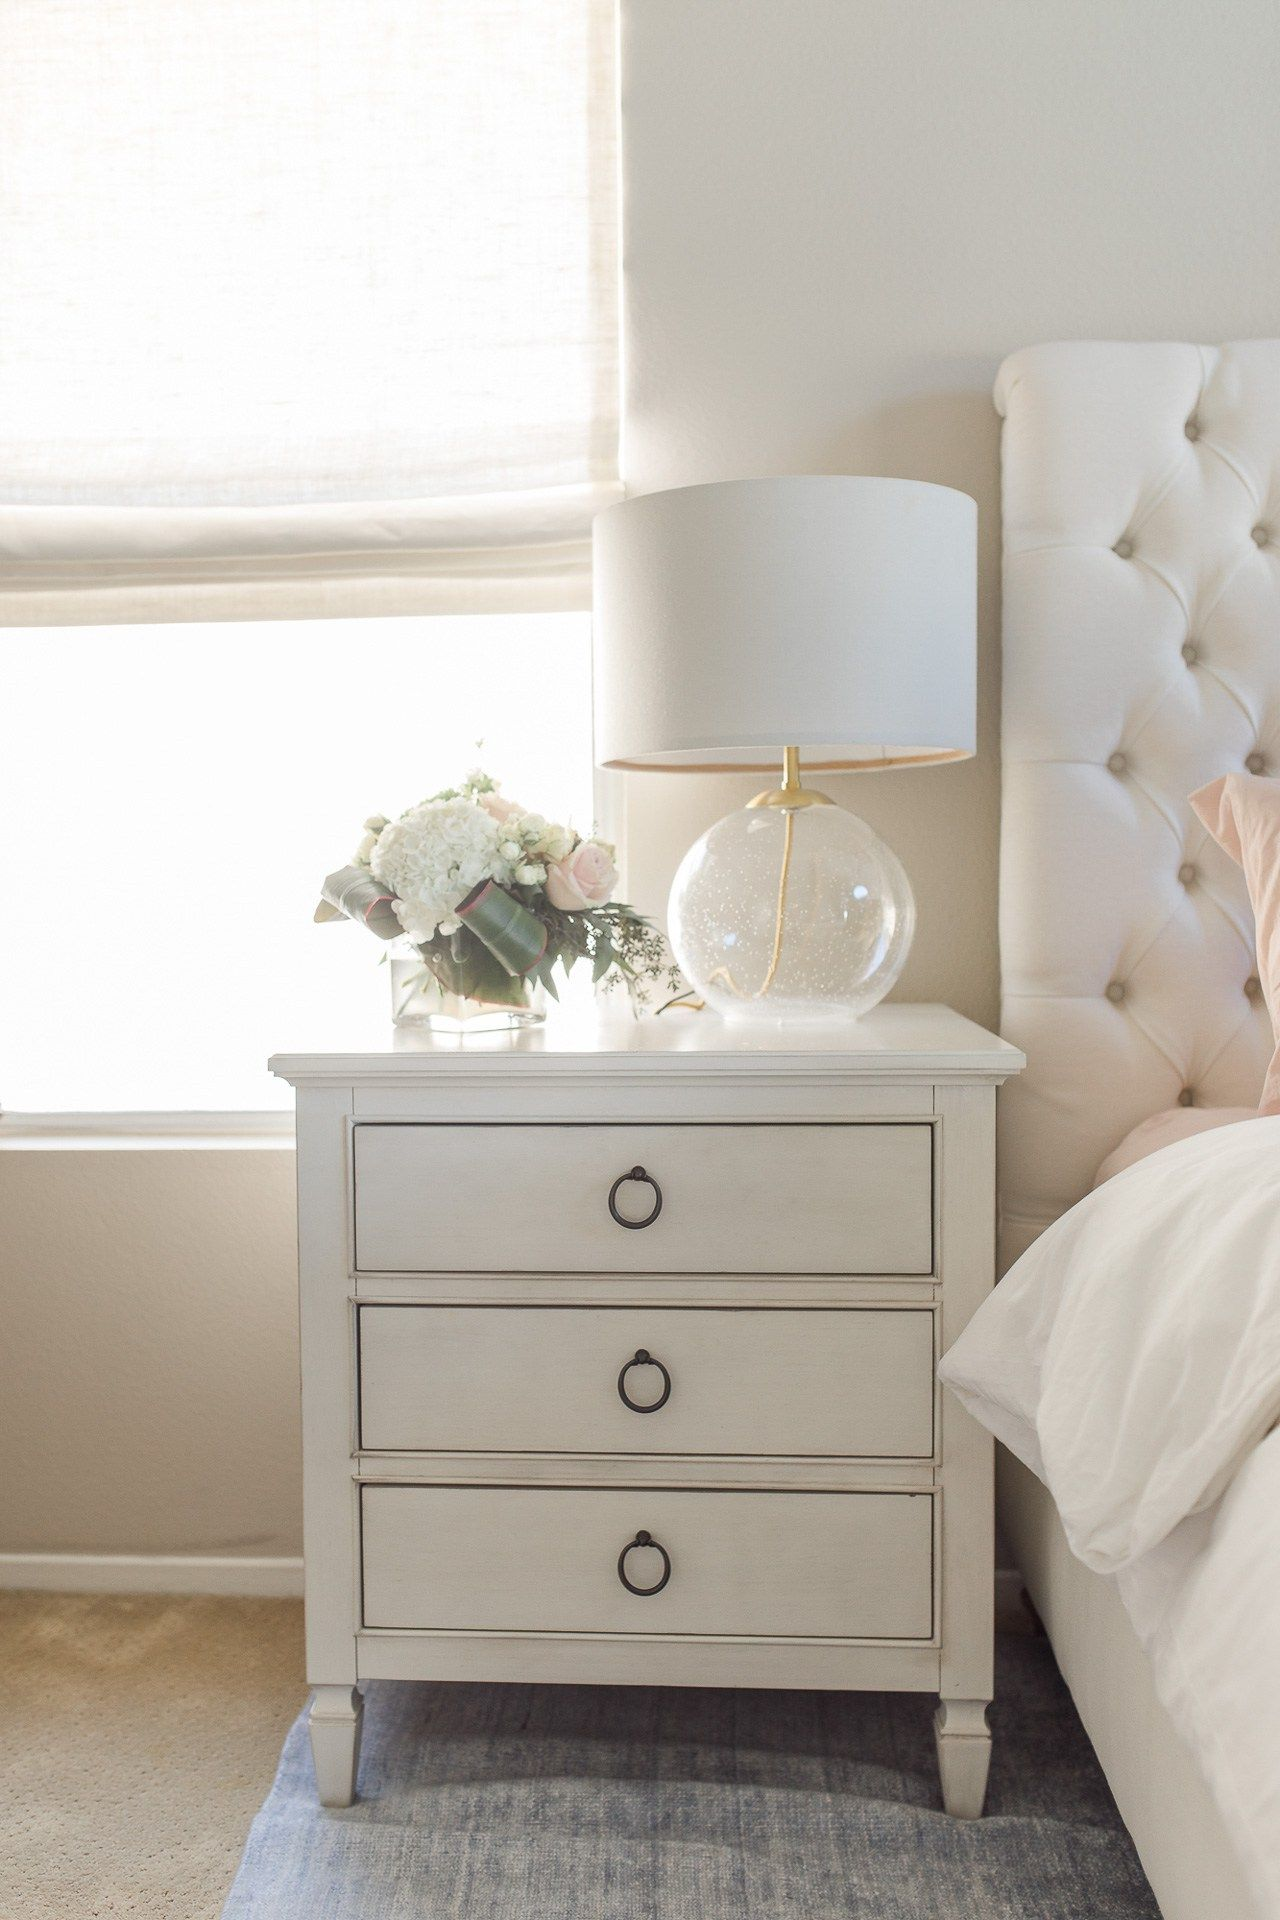 Bedside Table With Images Bedside Table Decor Side Tables